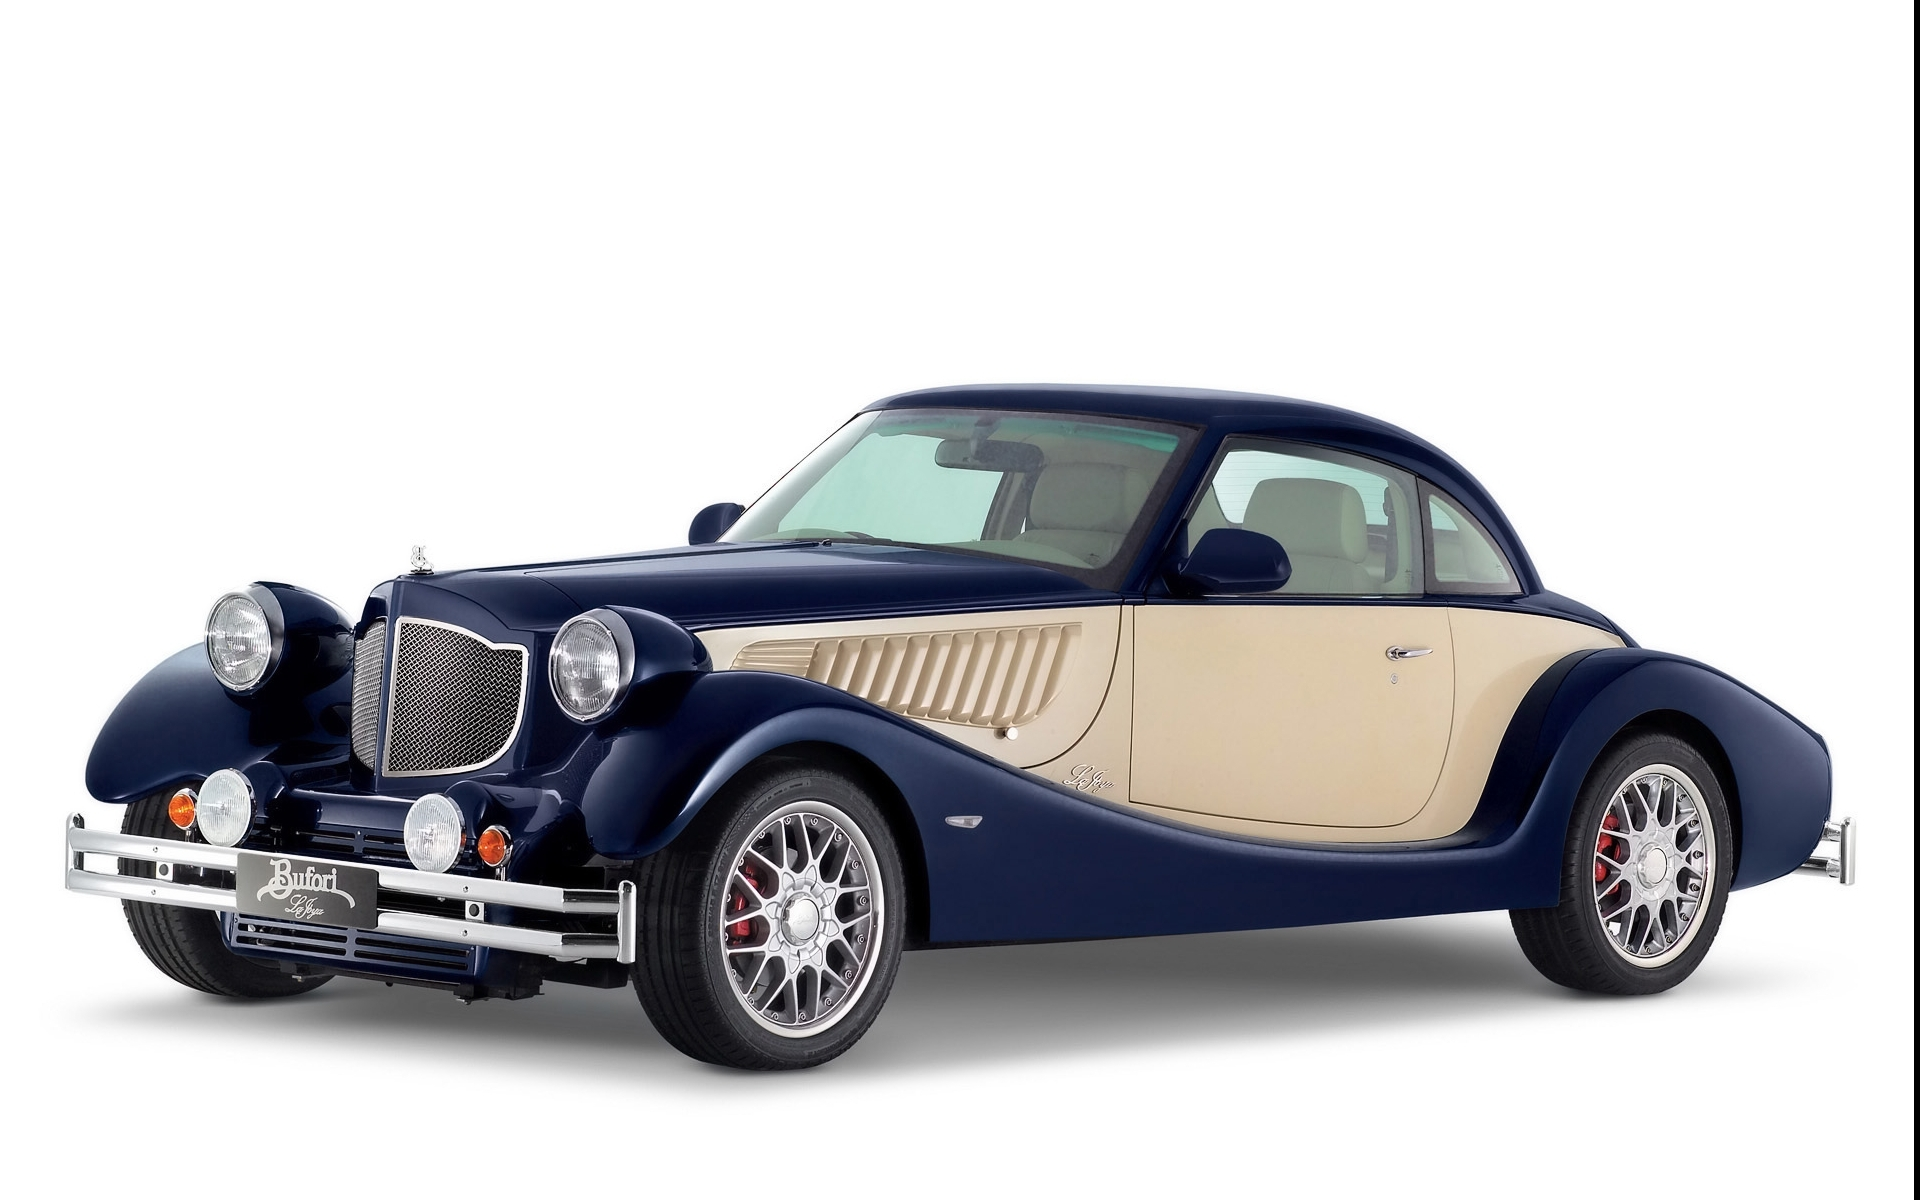 Download Stock Photos of classic cars wallpaper images photography 1920x1200